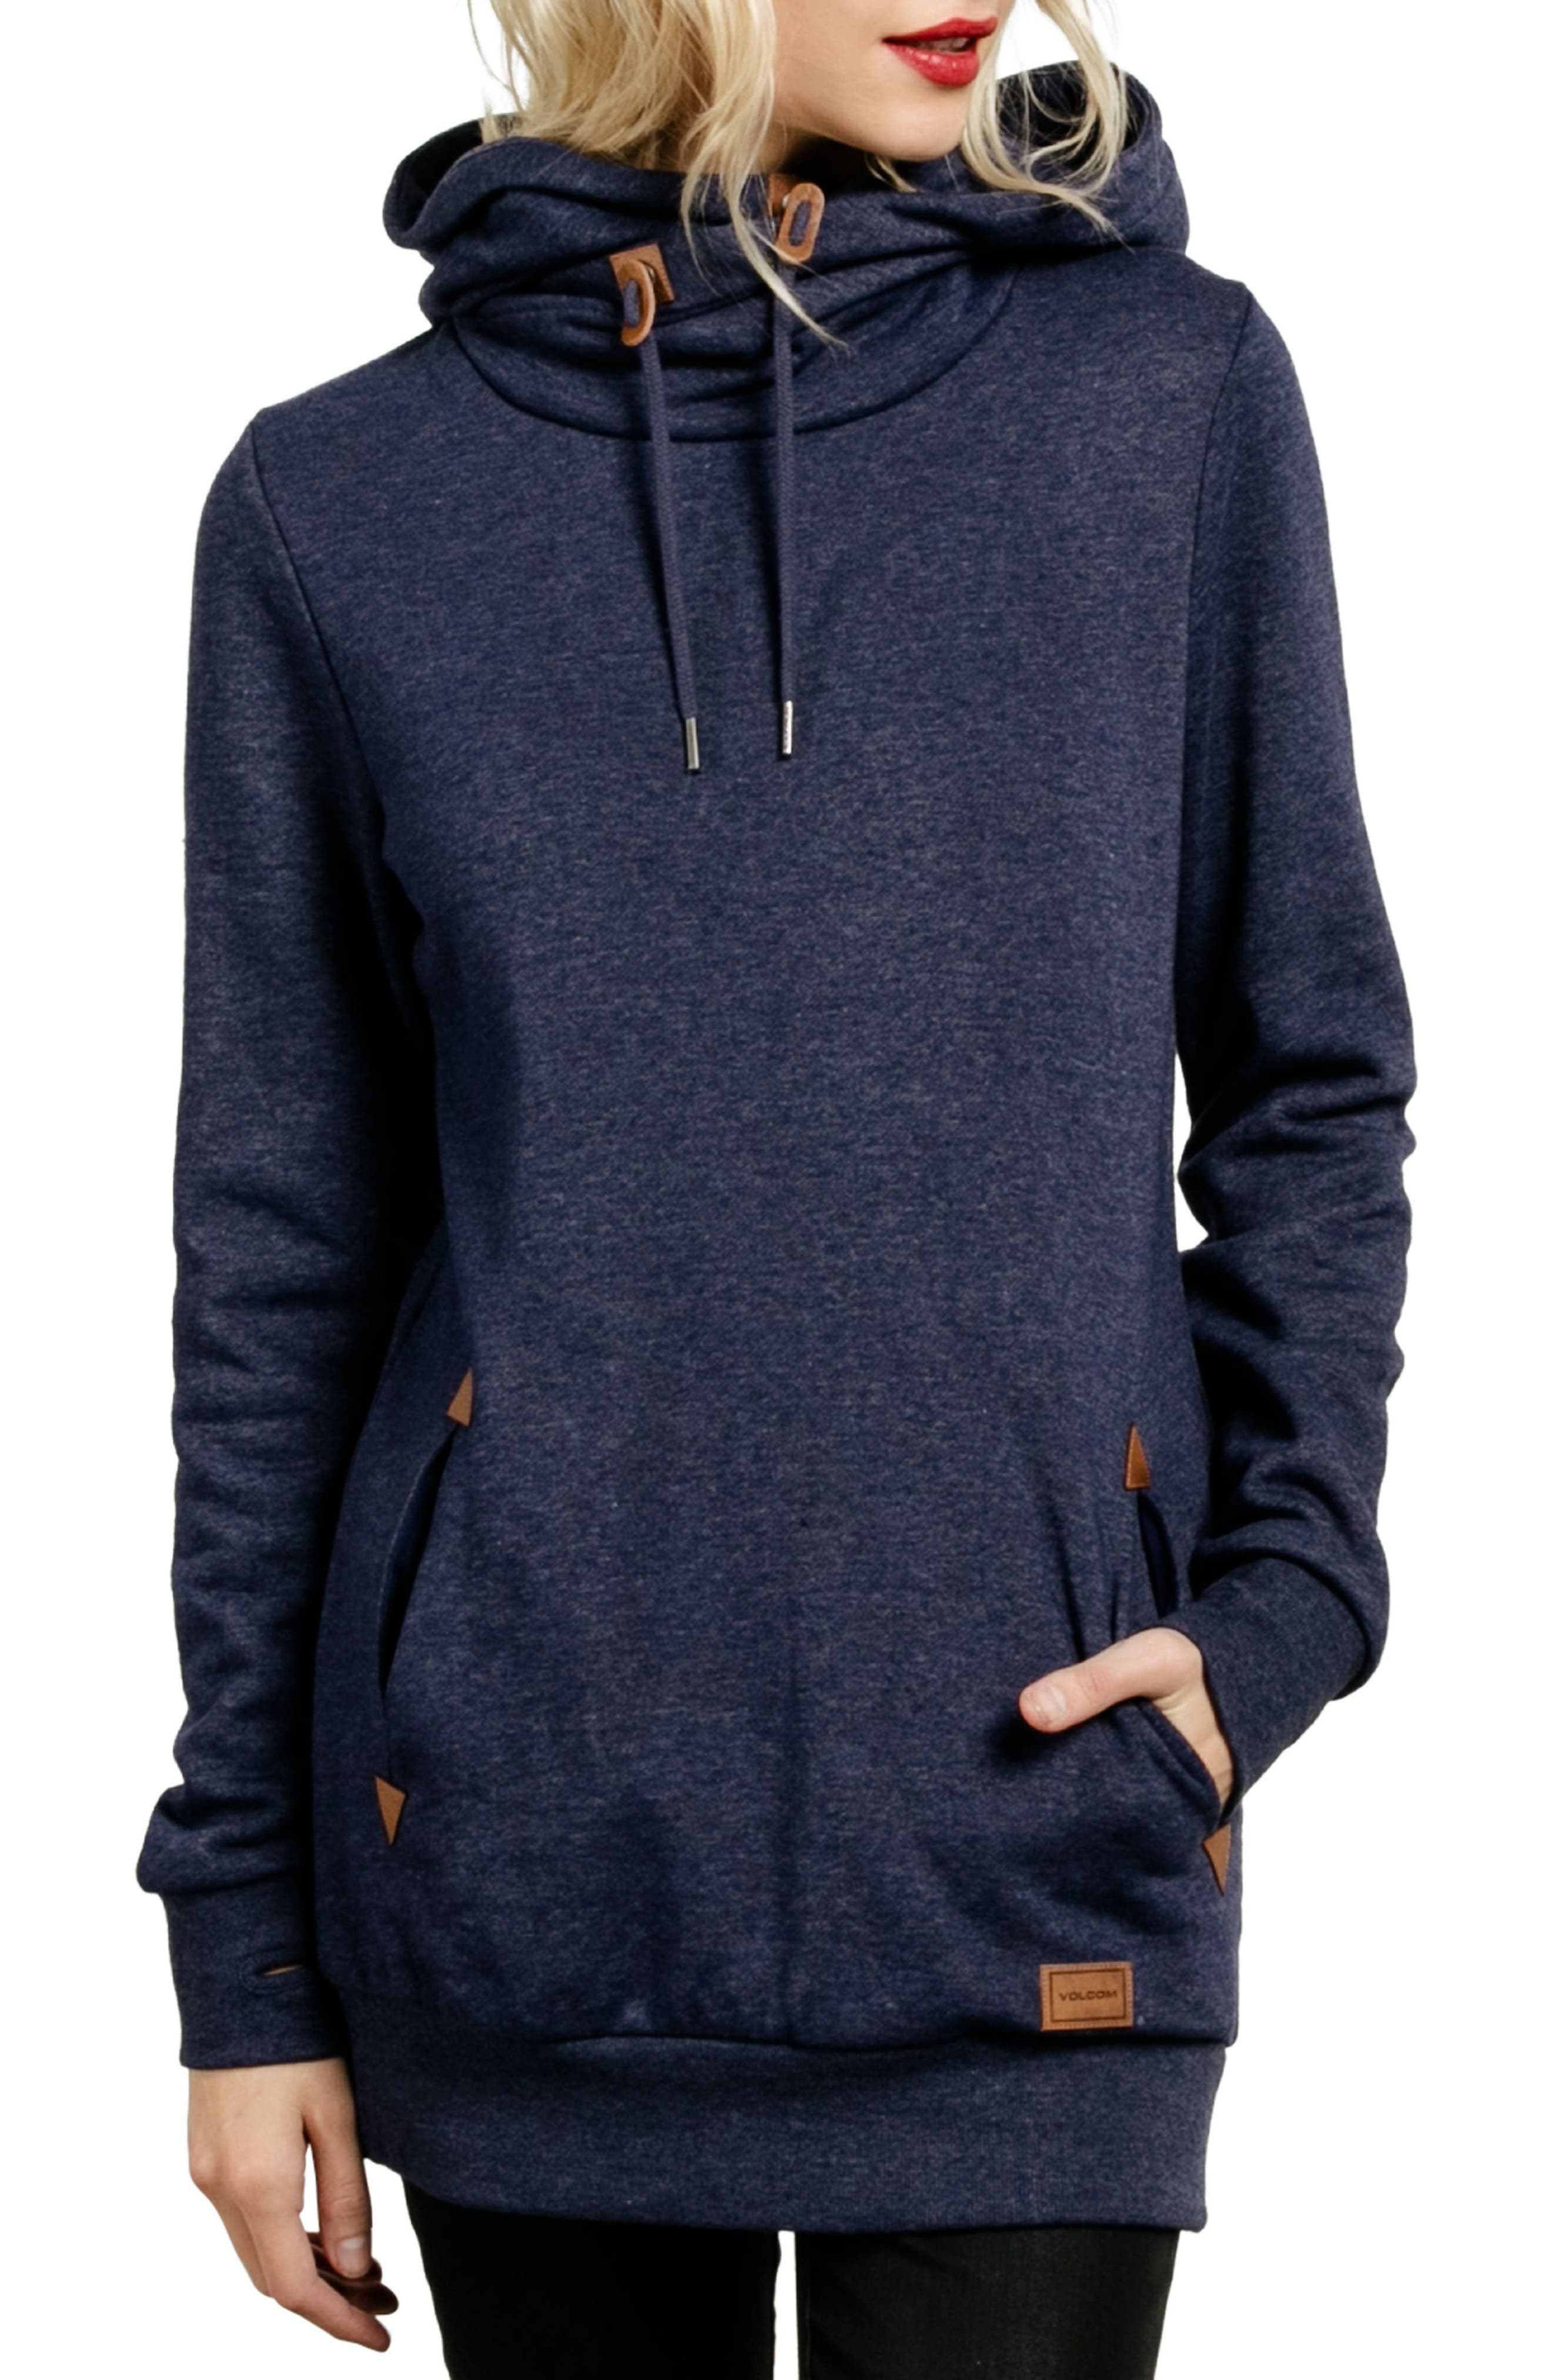 Walk on By Funnel Neck Hoodie,                         Main,                         color, Midnight Blue